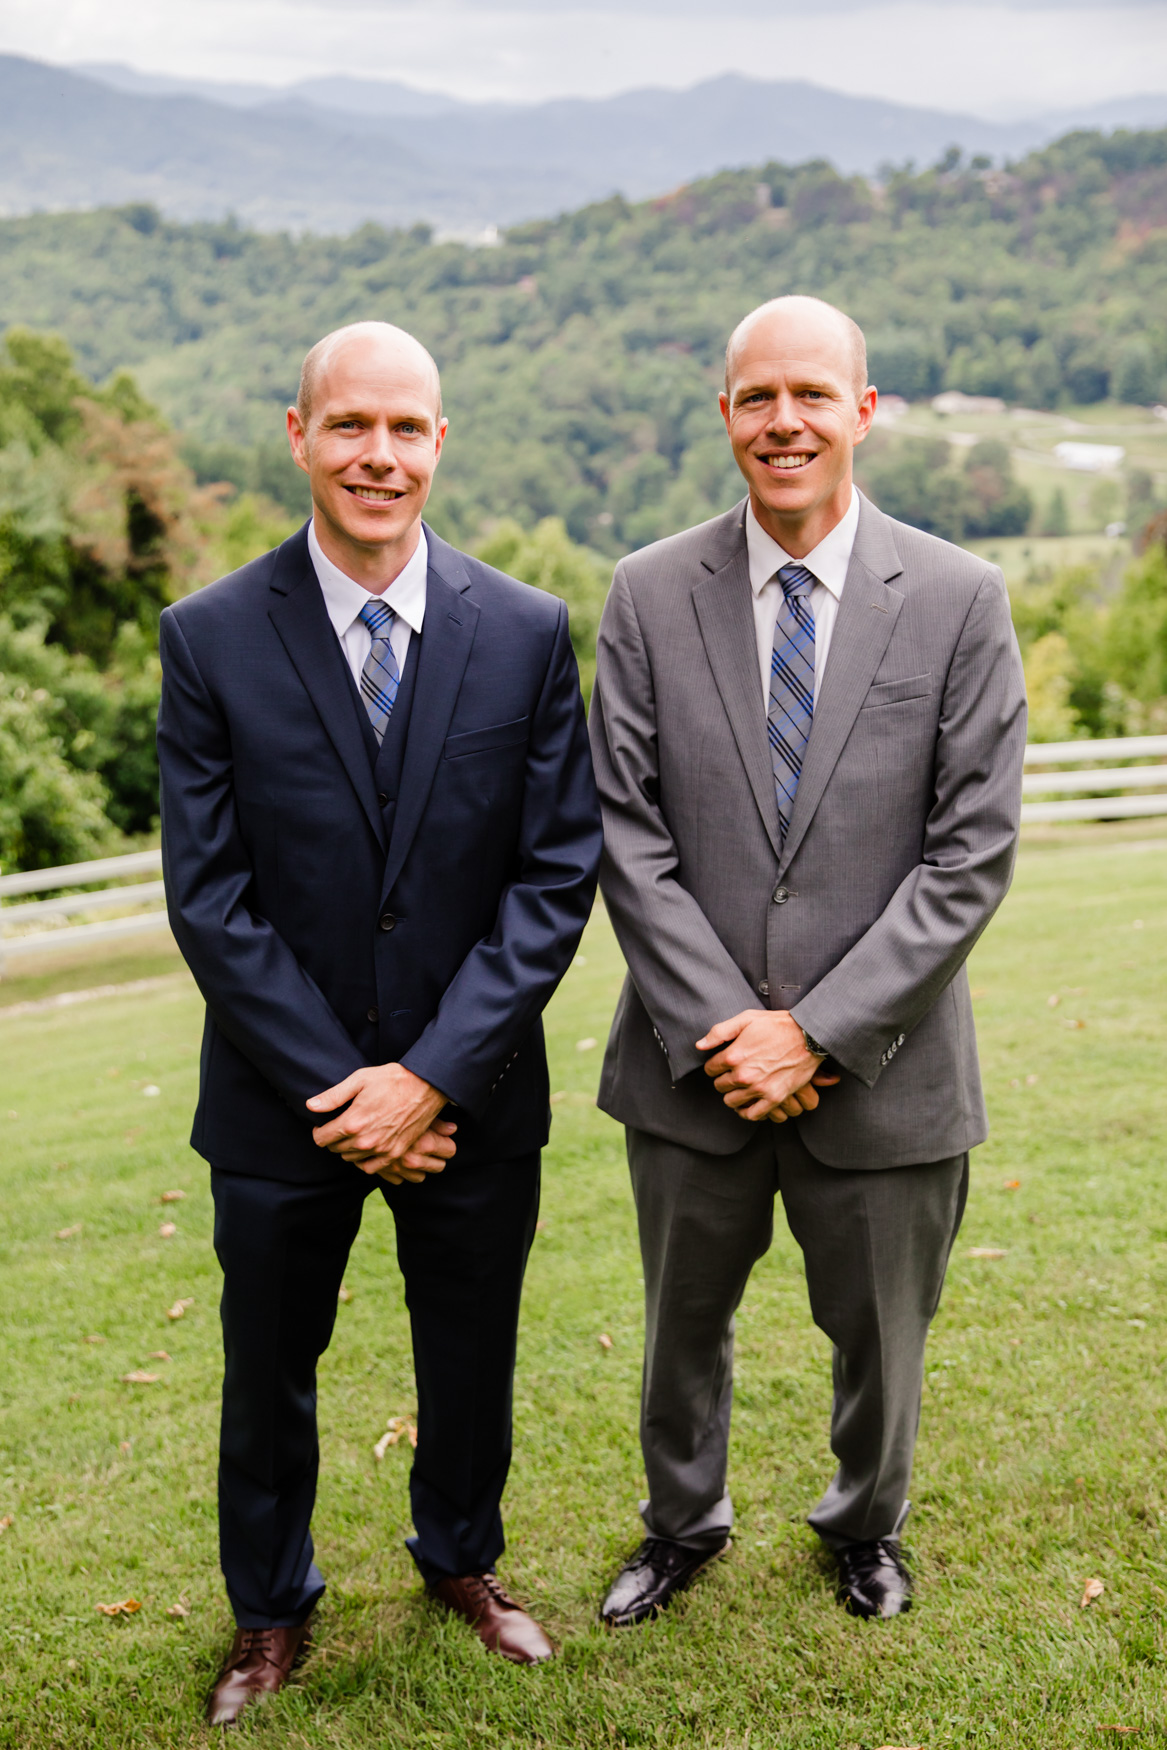 Groom and Twin Brother Portrait Waynesville NC Wedding Photography Inn at Tranquility Farm